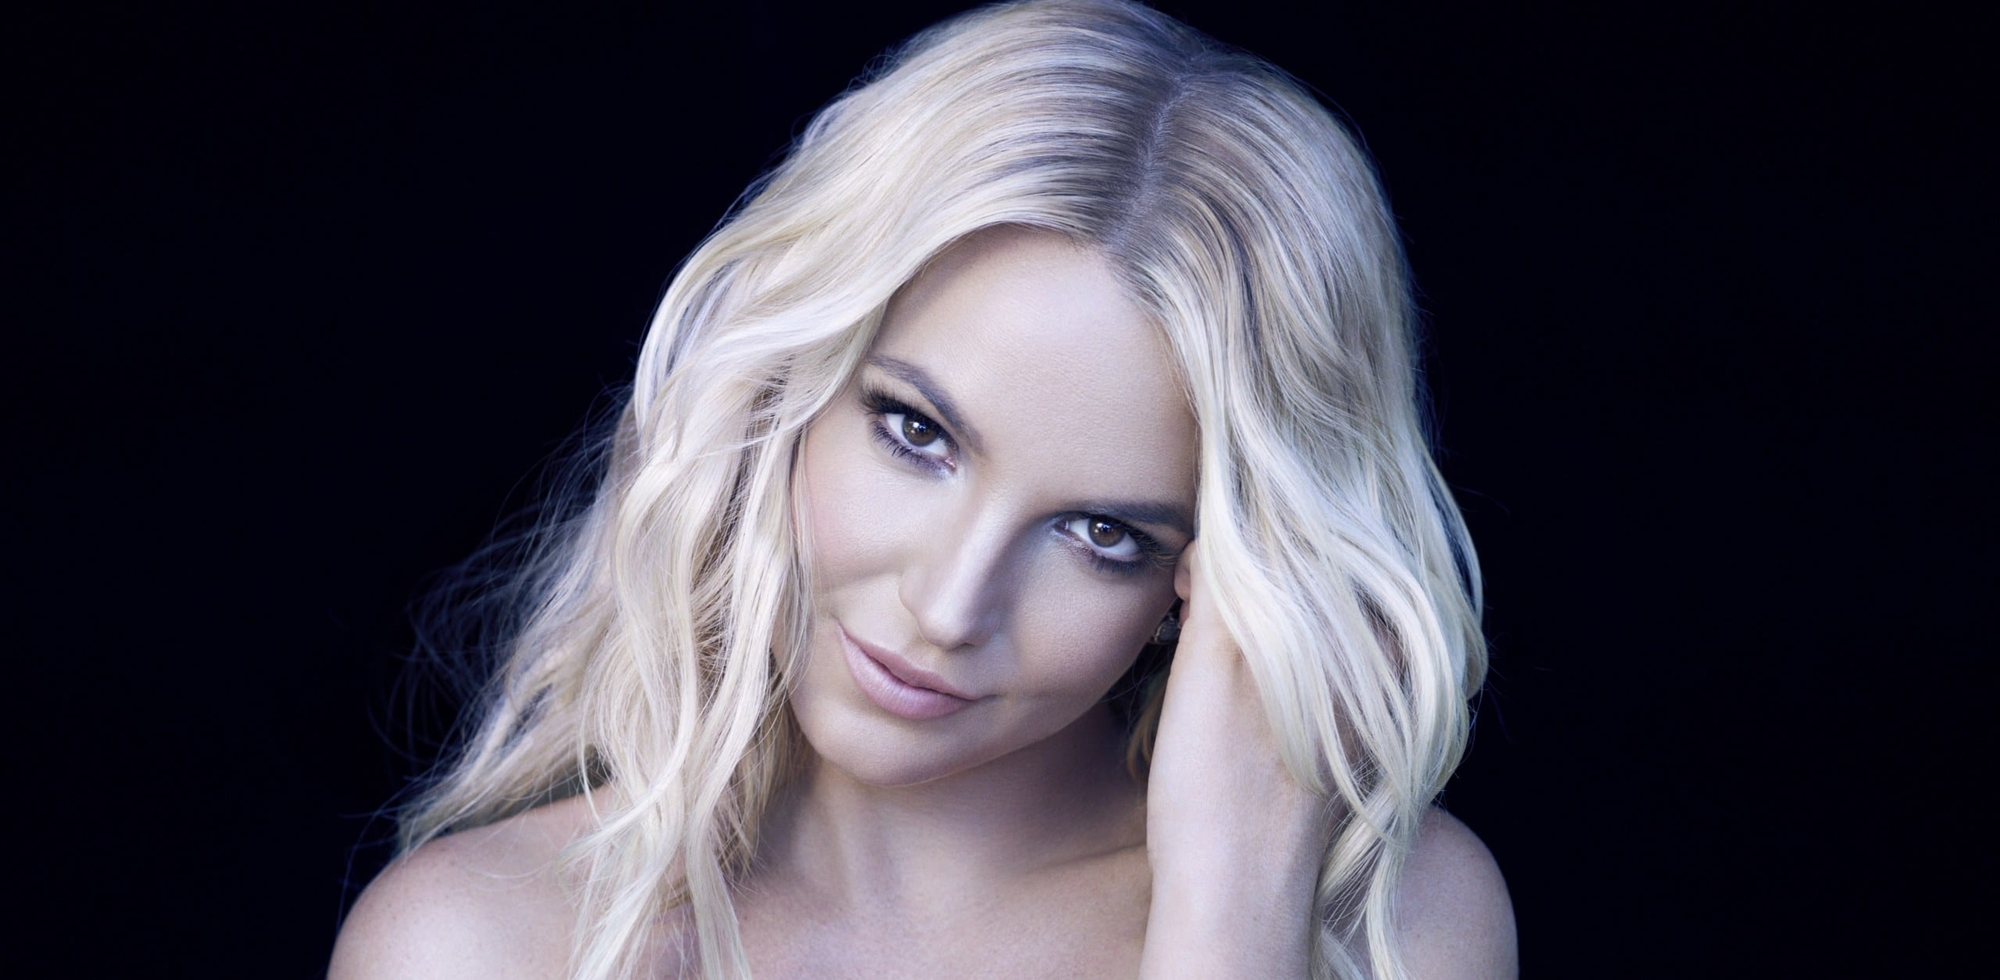 britney spears confessions jayden carriere musique